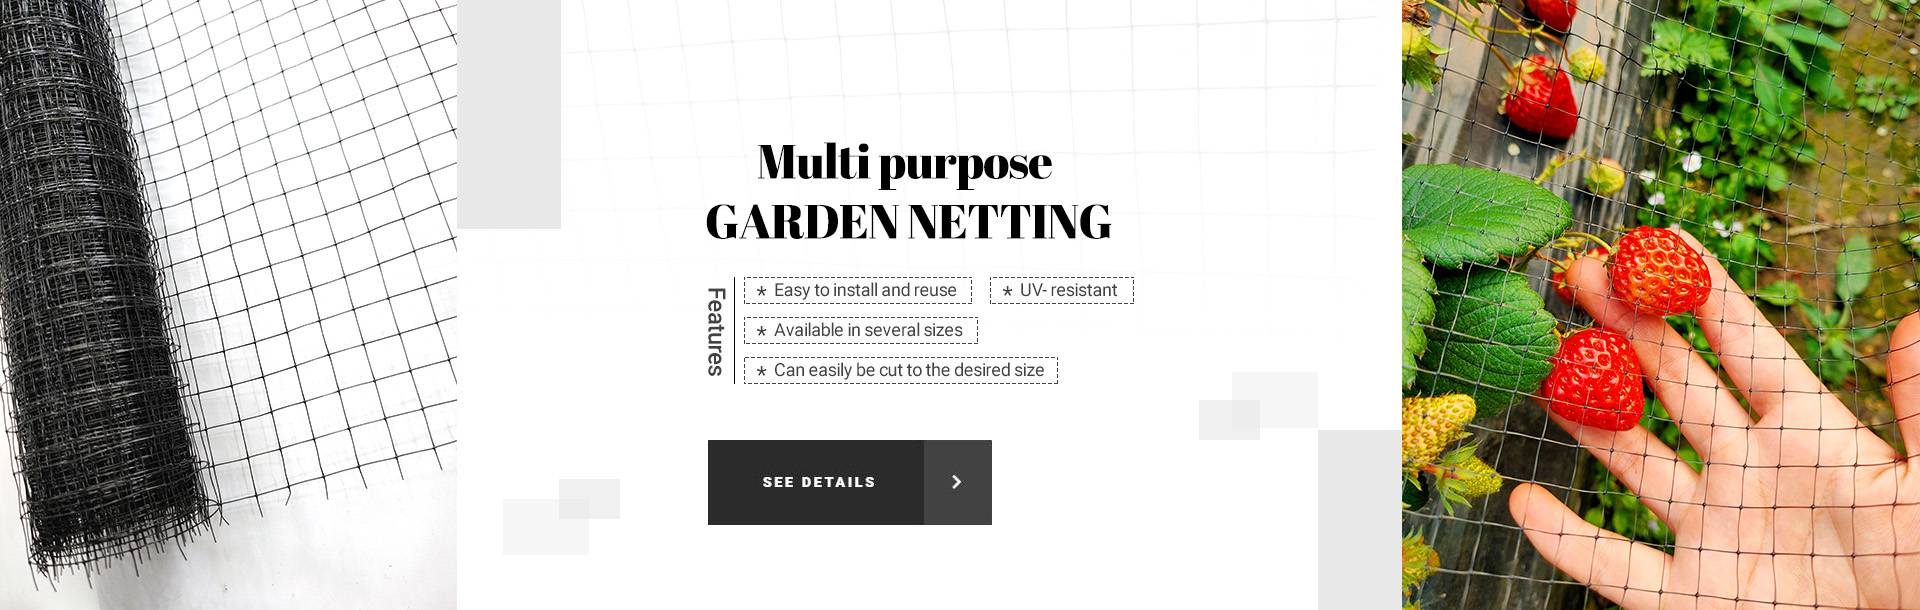 Multi purpose GARDEN NETTING